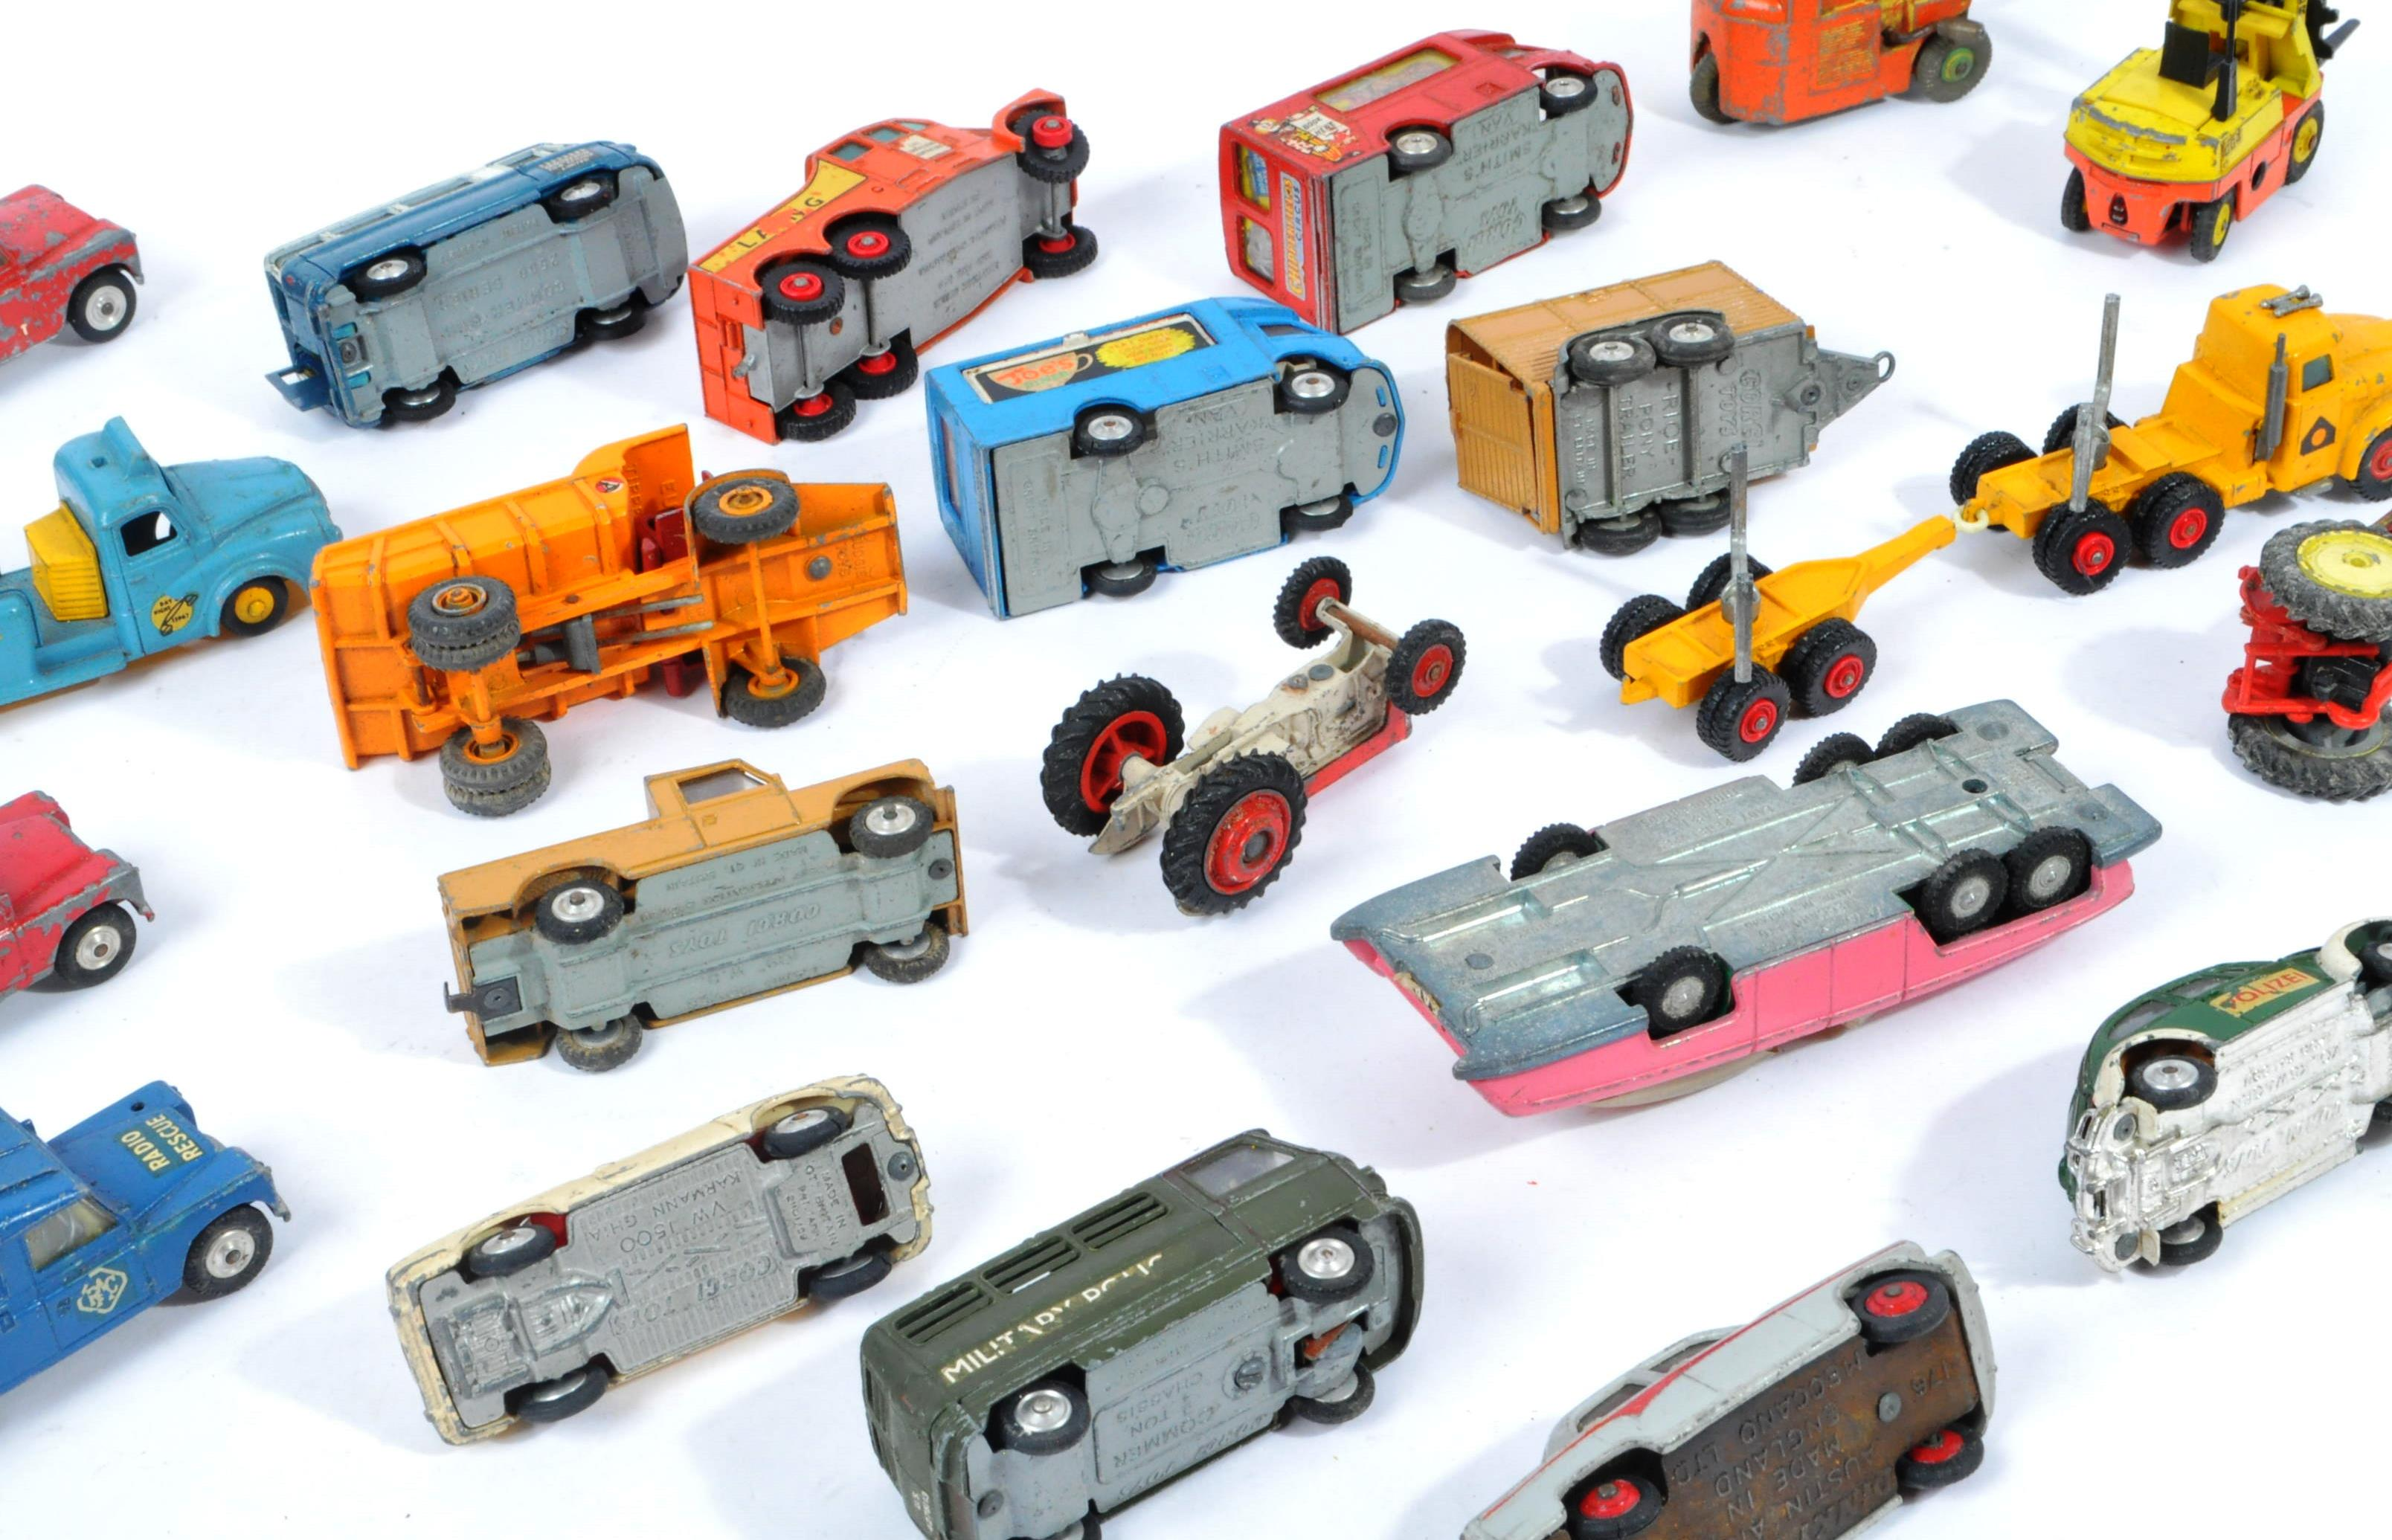 COLLECTION OF VINTAGE CORGI & DINKY TOYS DIECAST MODELS - Image 10 of 10